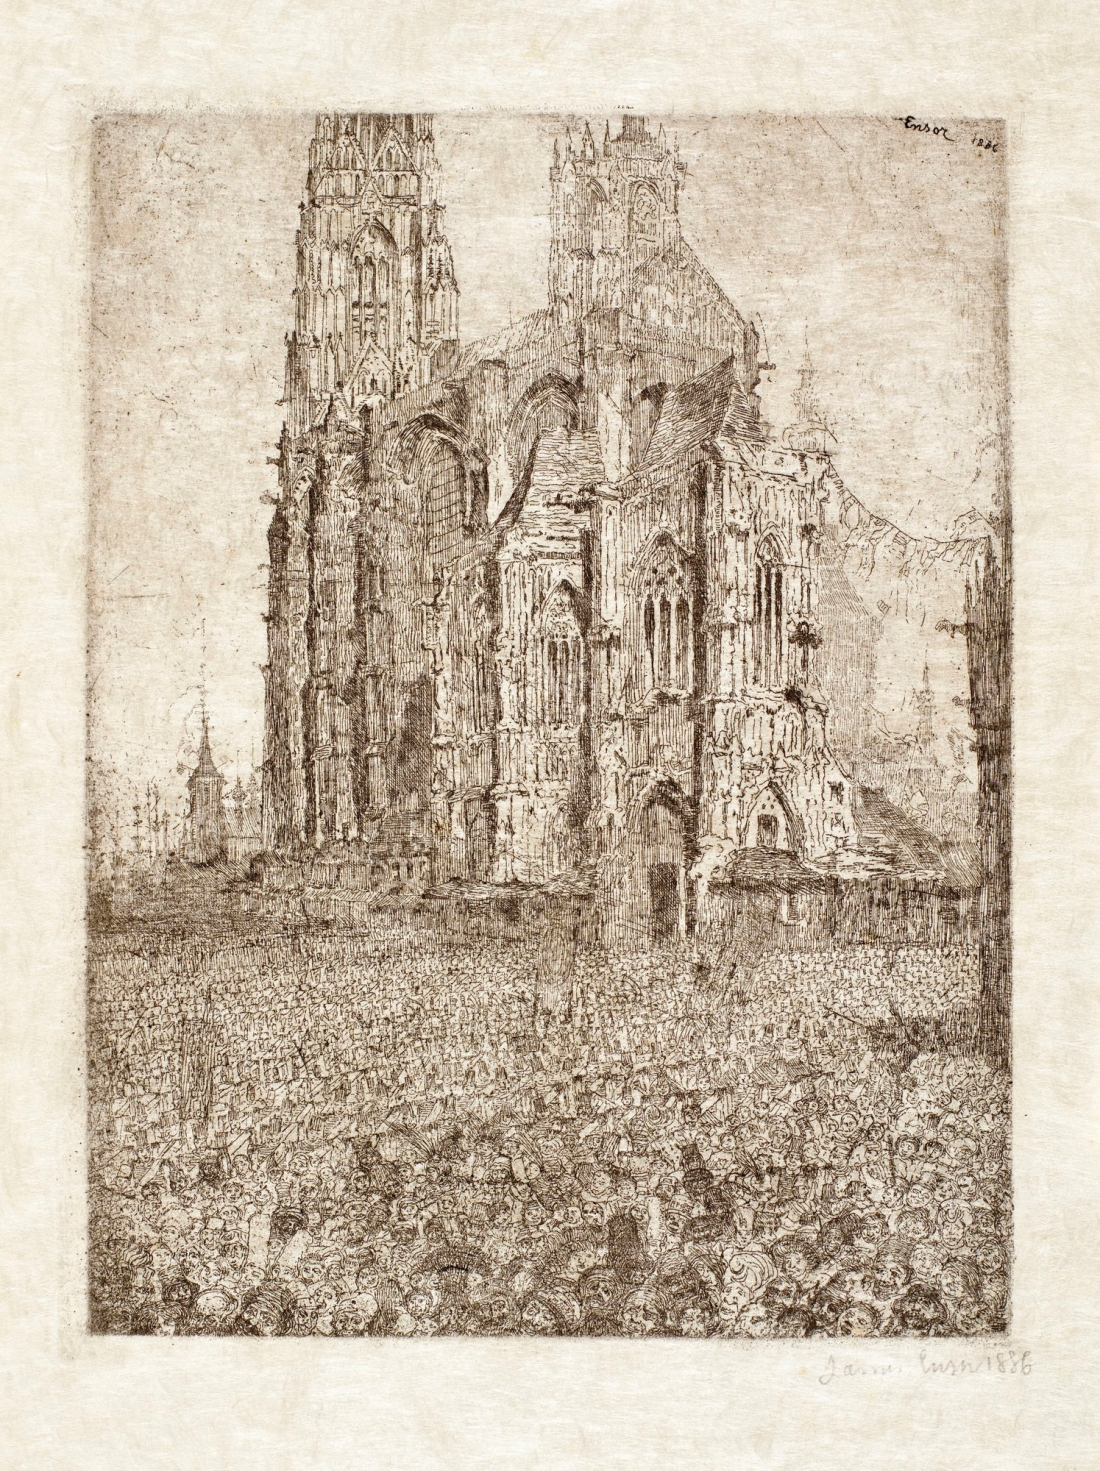 James Ensor, The Cathedral, 1886.